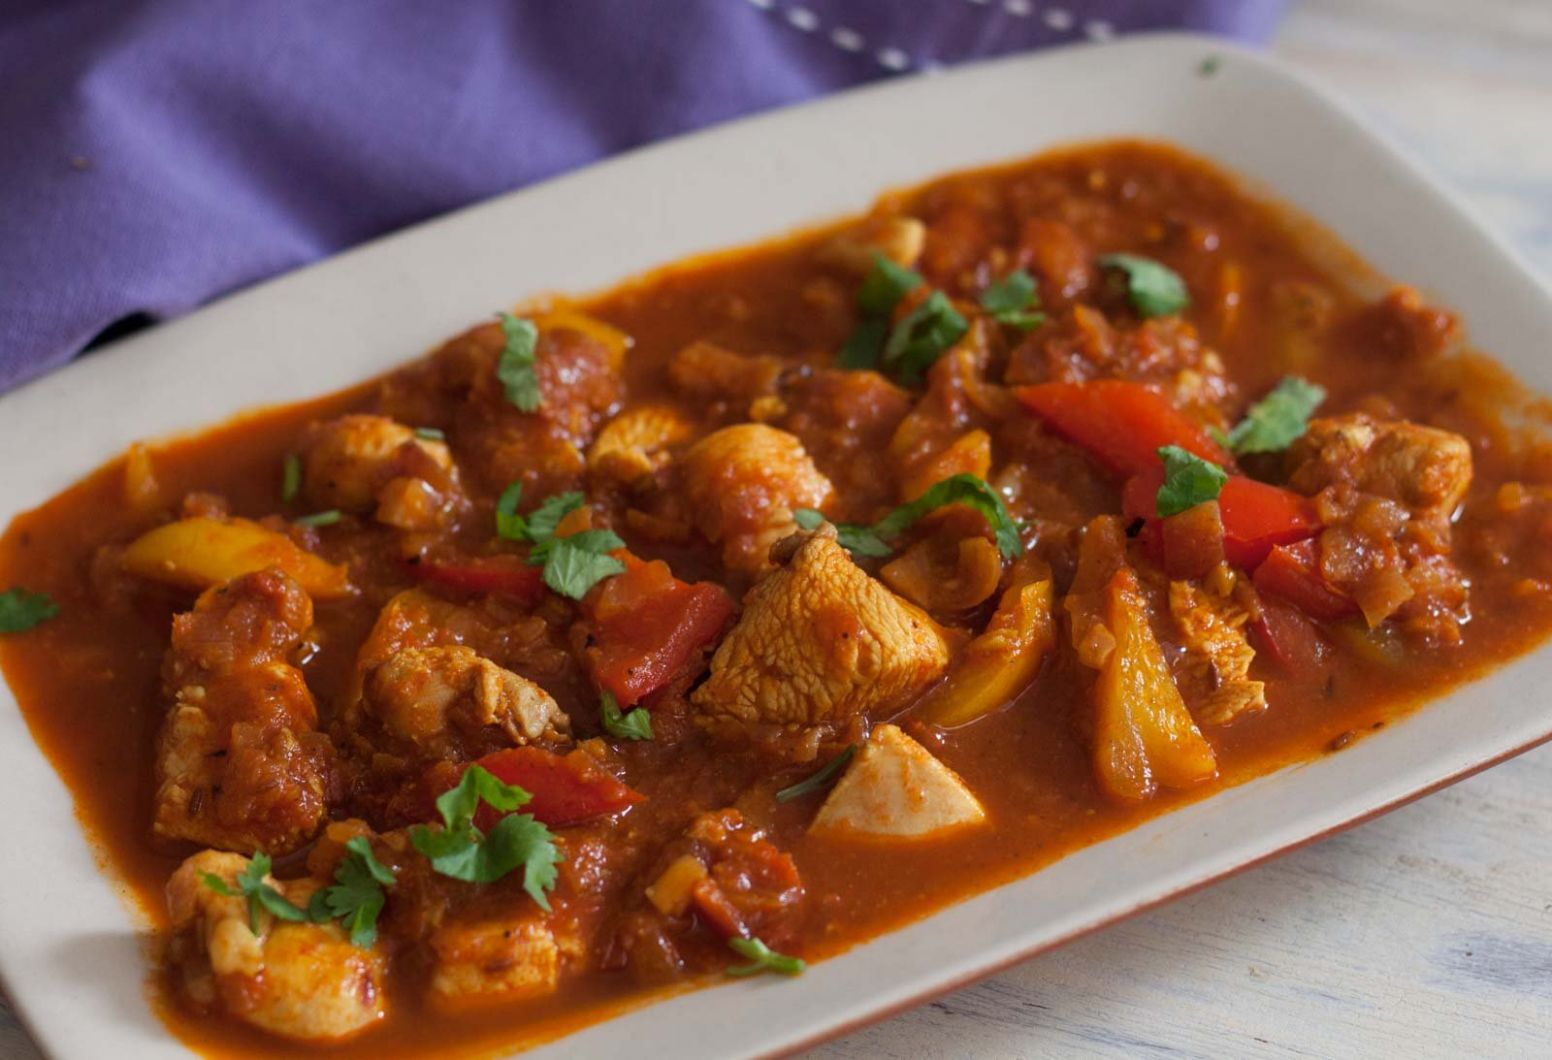 Chicken Jalfrezi Recipe - Chicken And Bell Peppers In Tomato Gravy - Recipes Chicken Jalfrezi